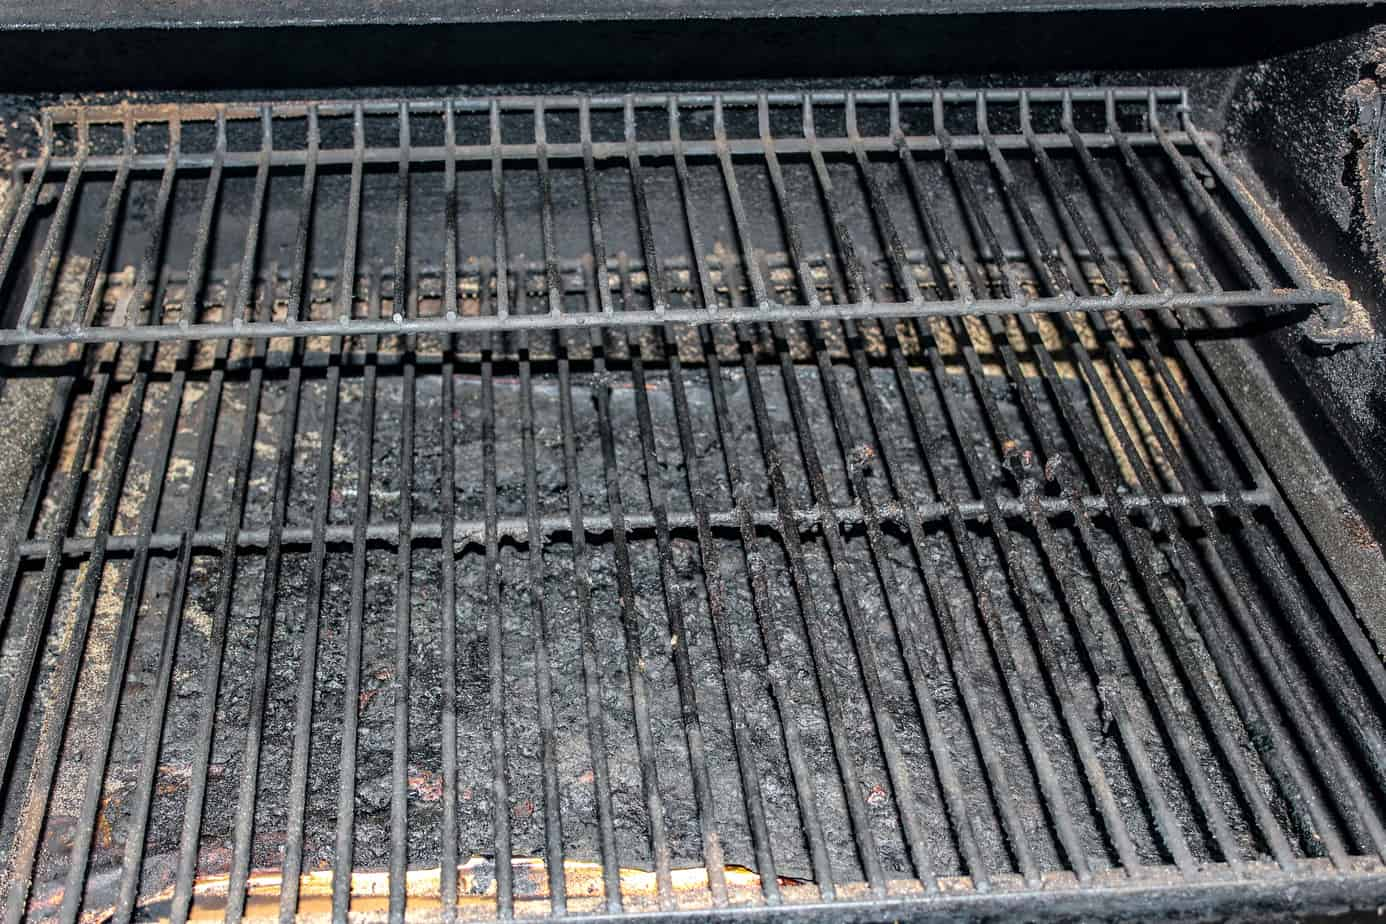 How to Clean Your Pellet Smoker • Smoked Meat Sunday